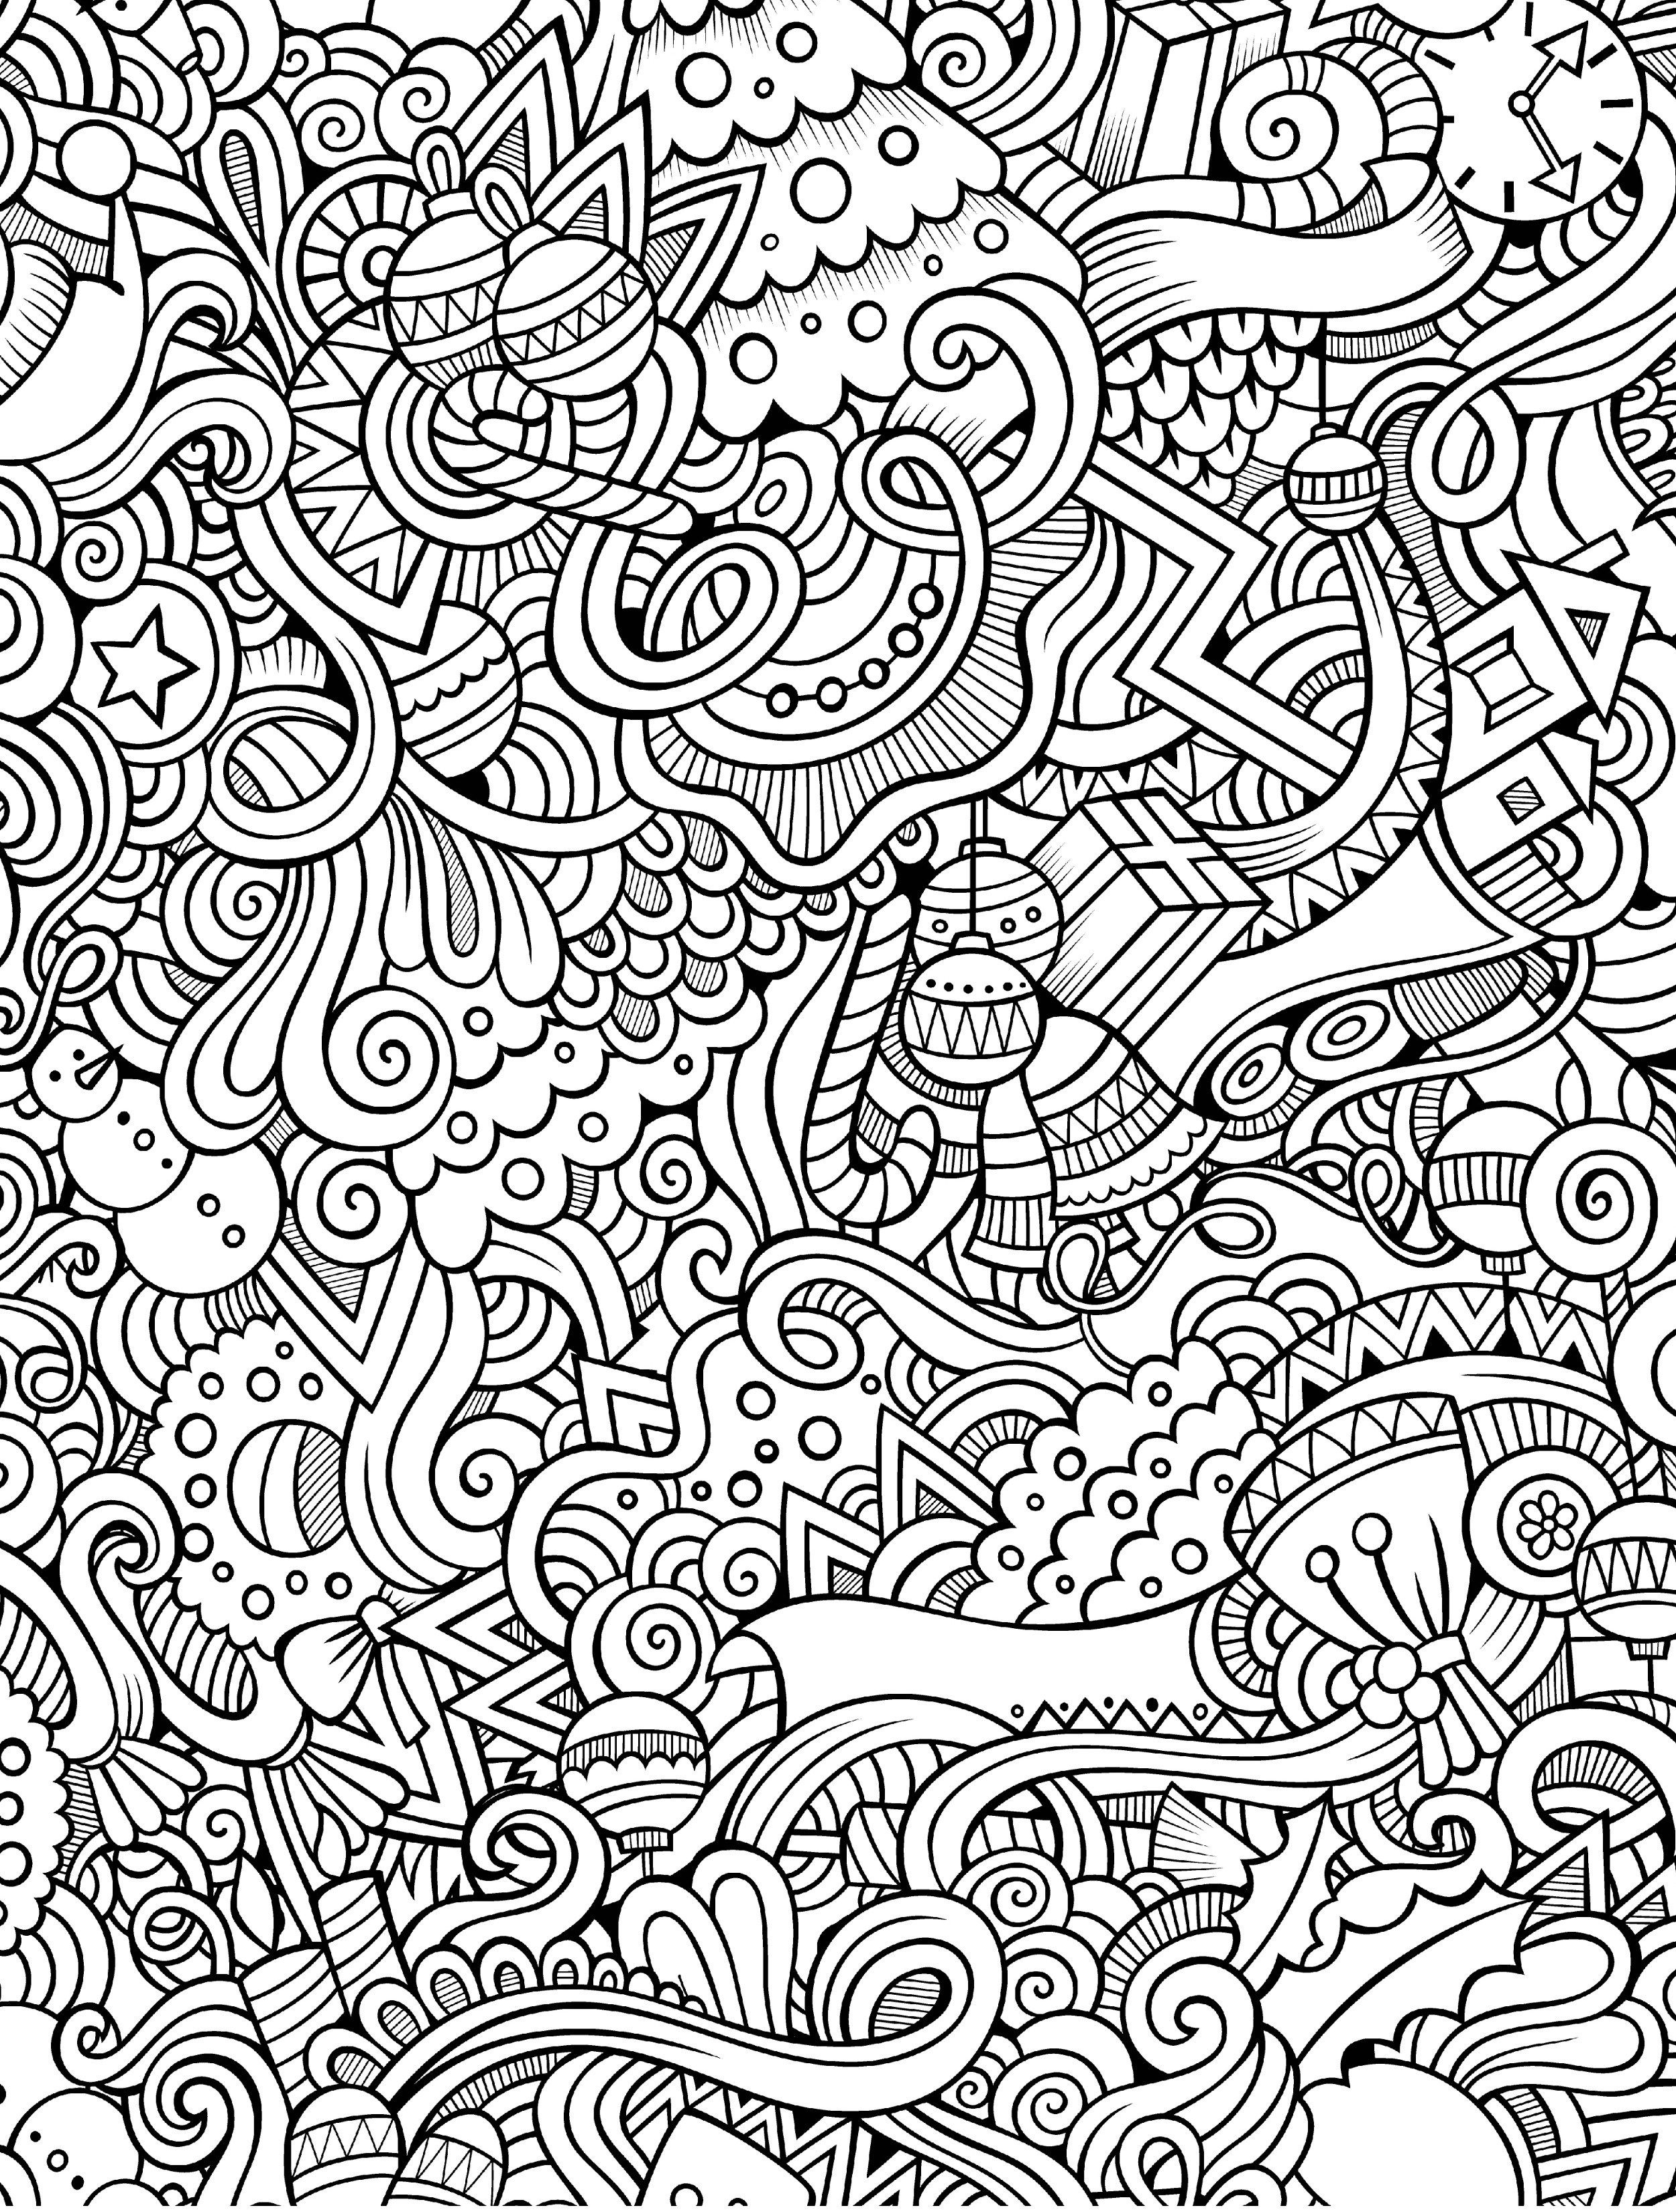 10 Free Printable Holiday Adult Coloring Pages | Coloring Pages - Free Printable Coloring Designs For Adults